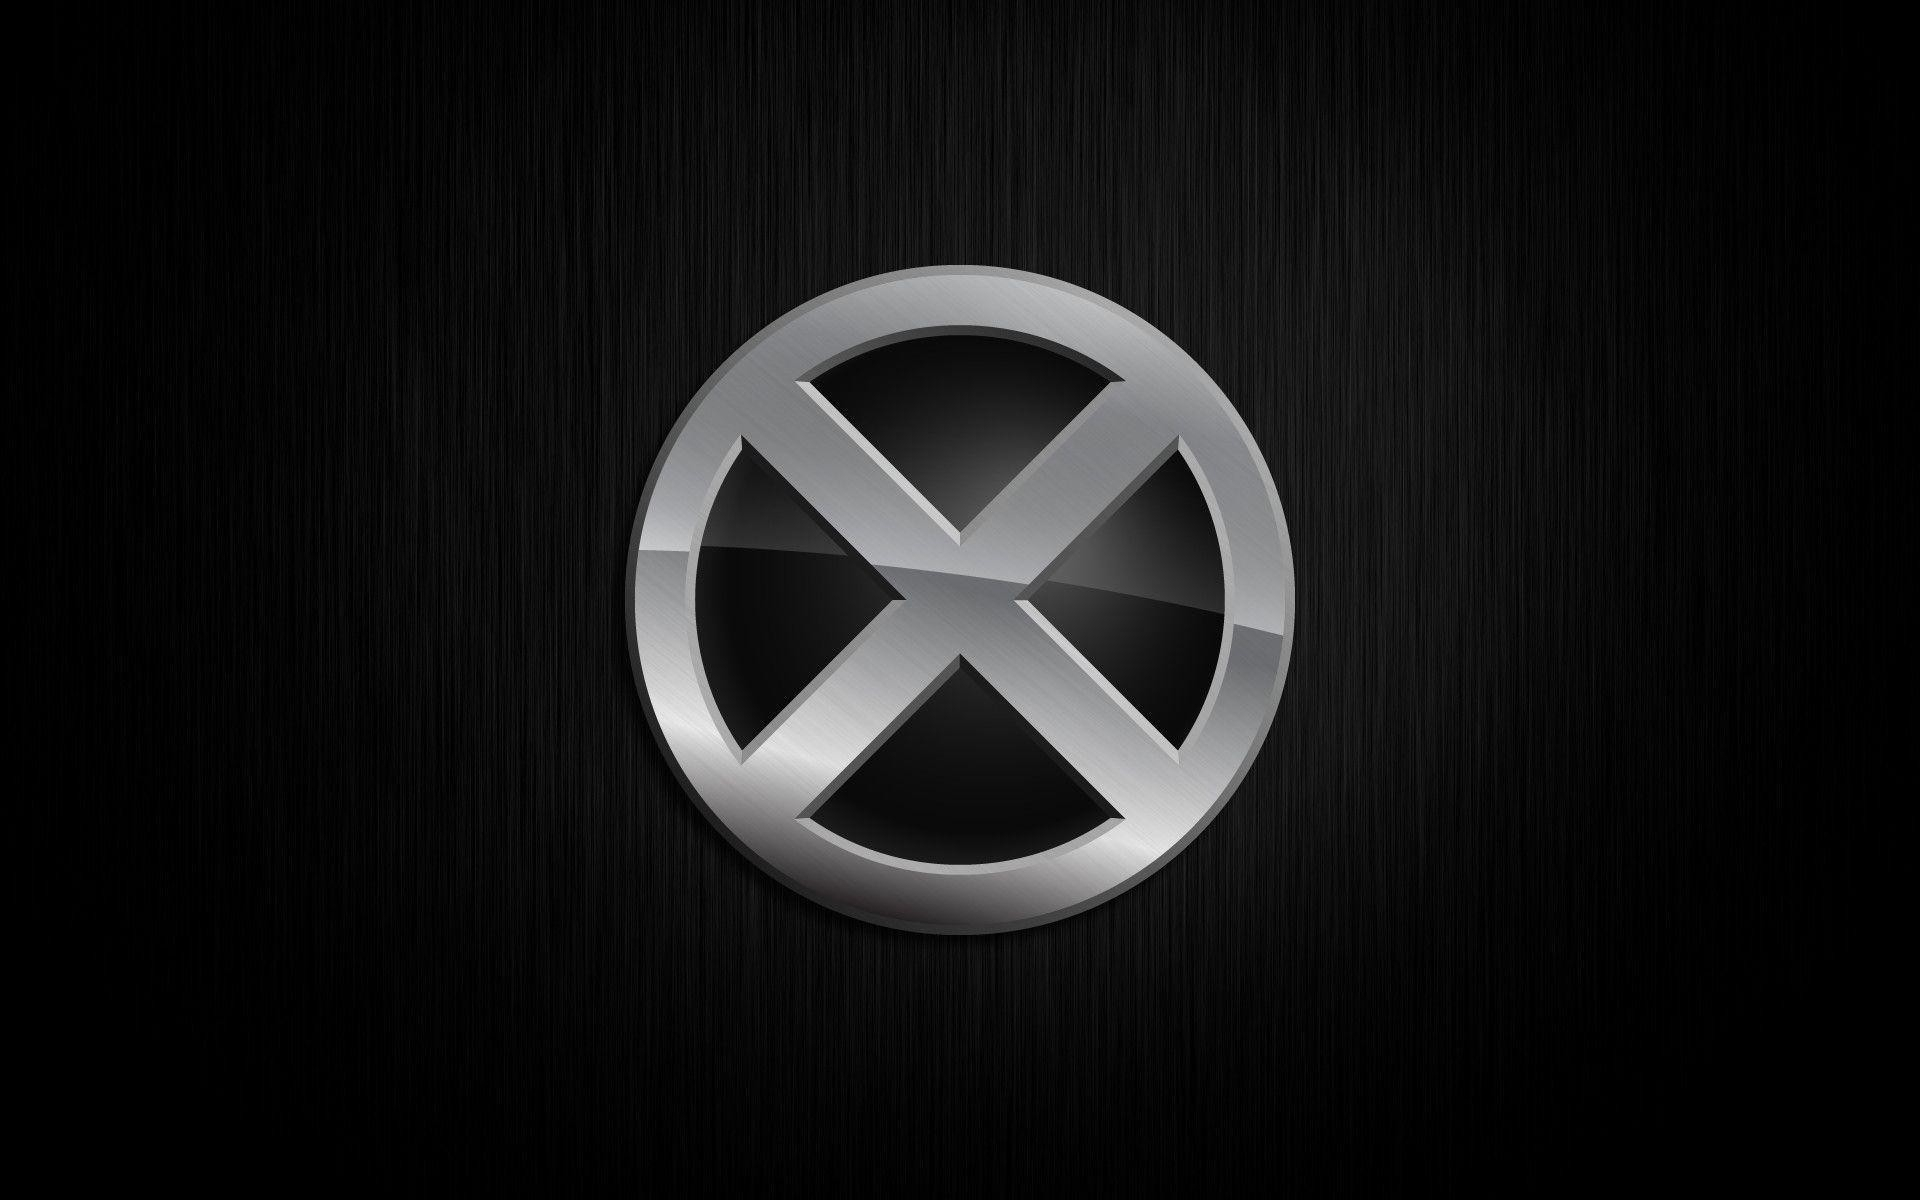 x men logo wallpaper (68+ images)